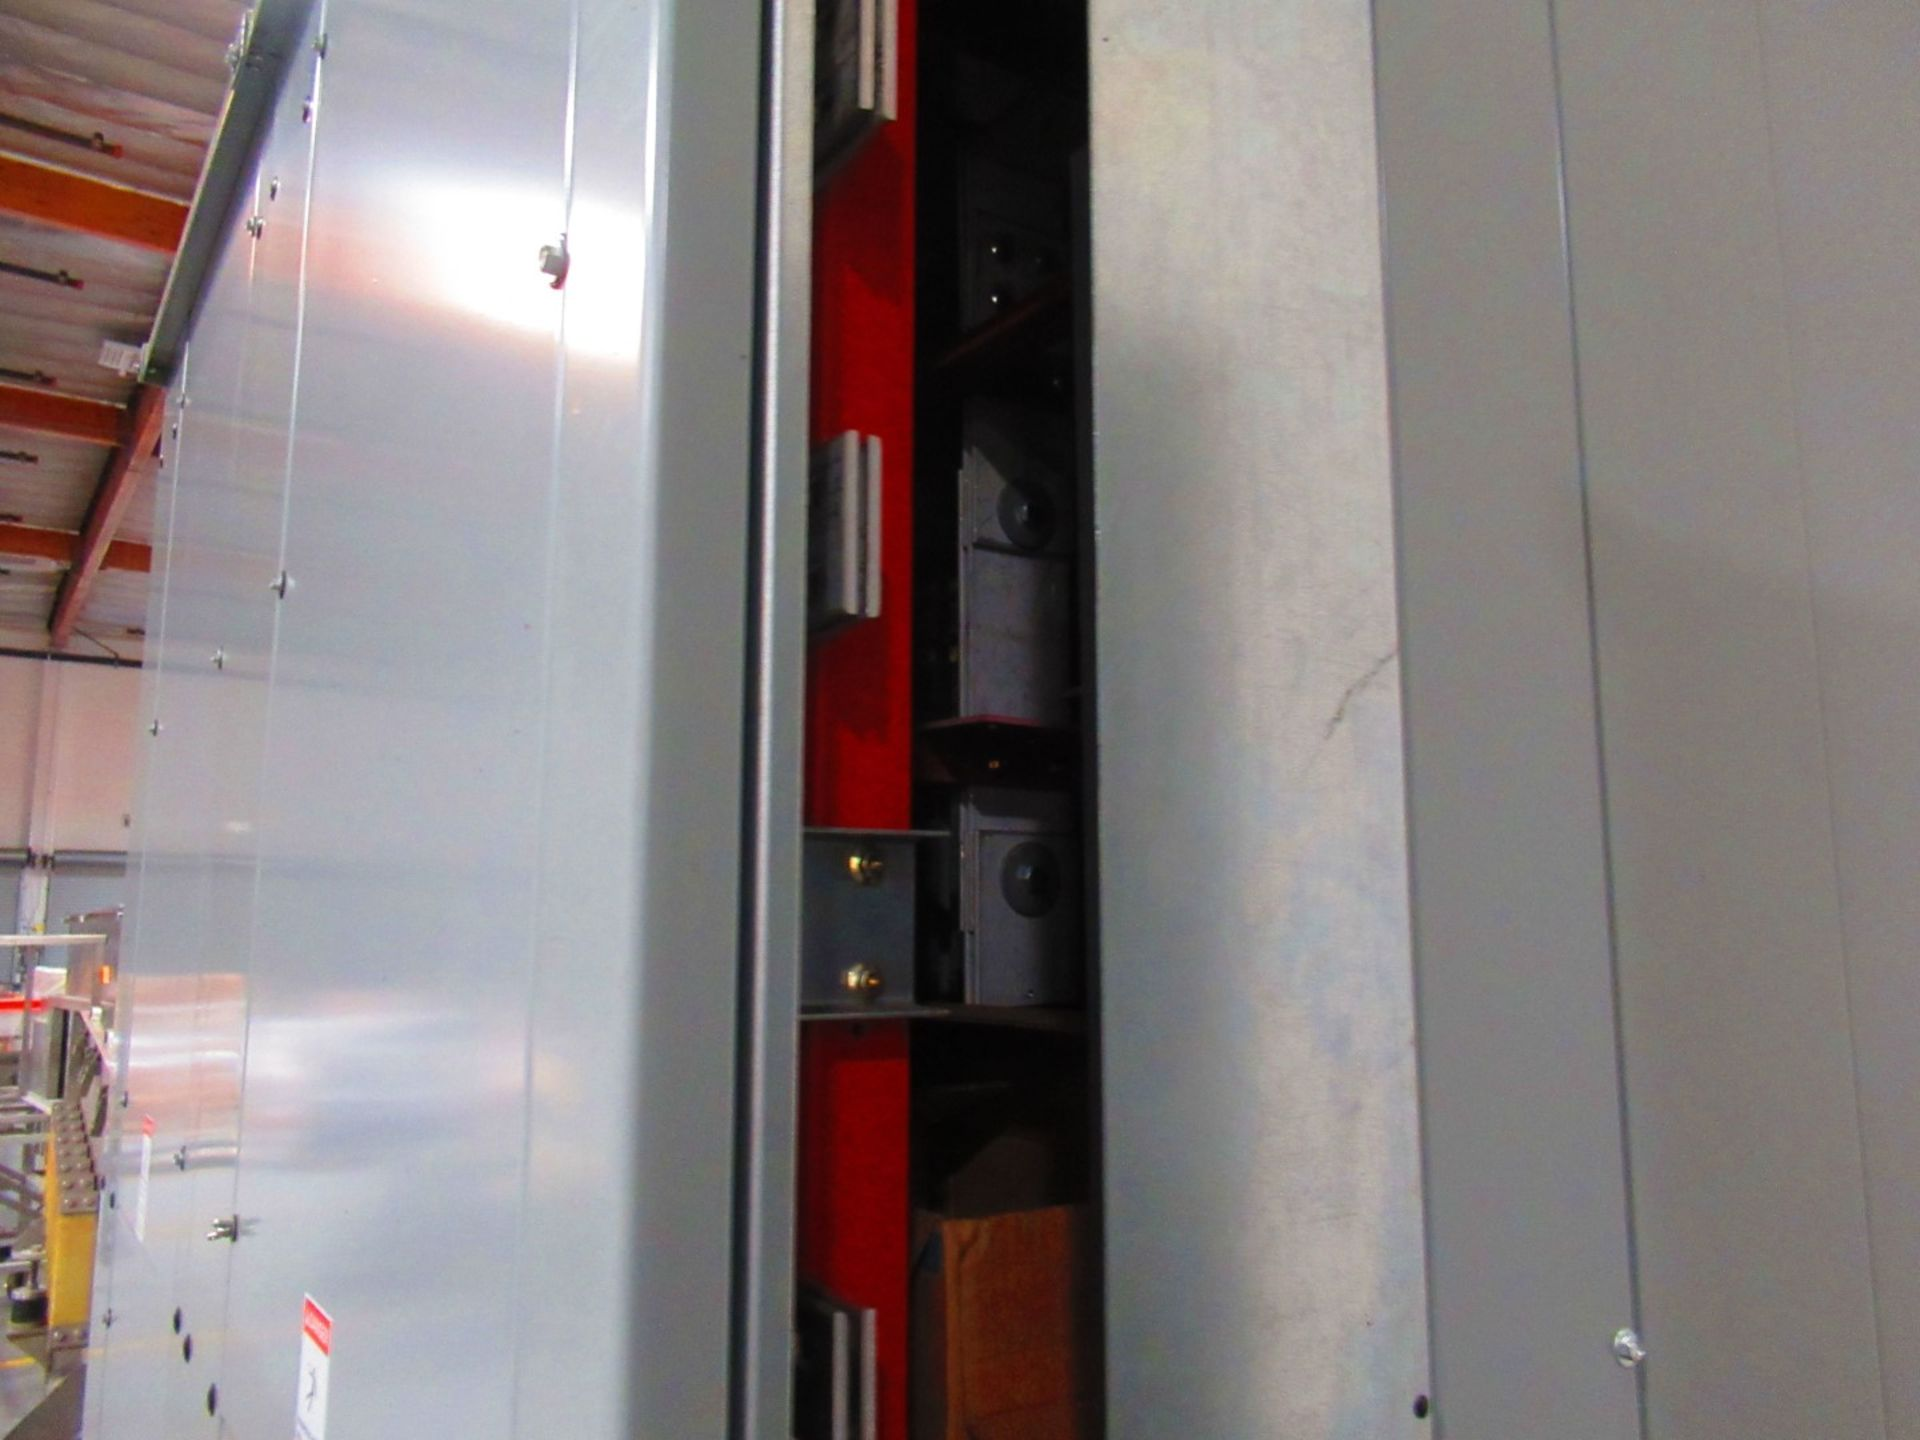 General Distribution Switchboard Cabinet Unit - Image 3 of 6